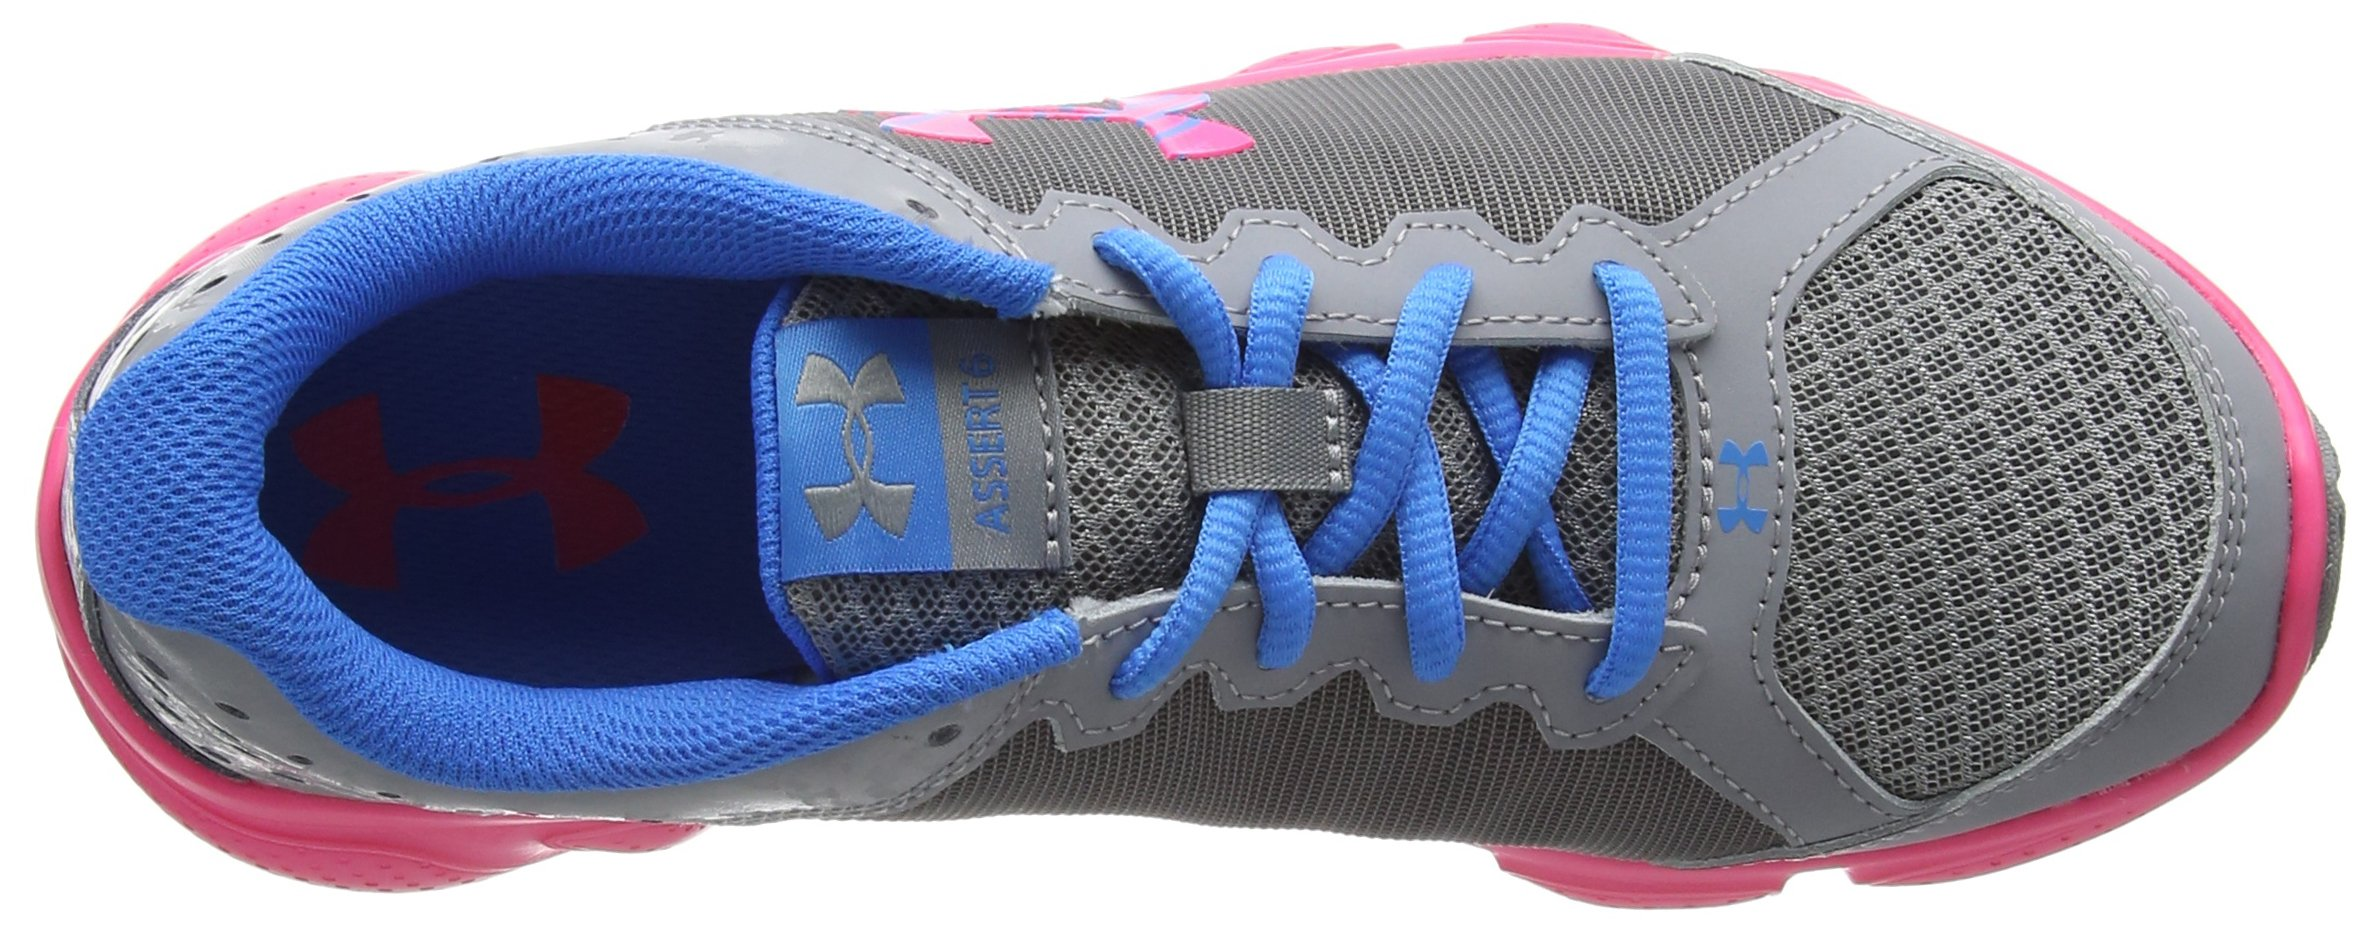 Under Armour Girls' Grade School Micro G Assert 6, Steel (036)/Harmony Red, 5.5 by Under Armour (Image #7)